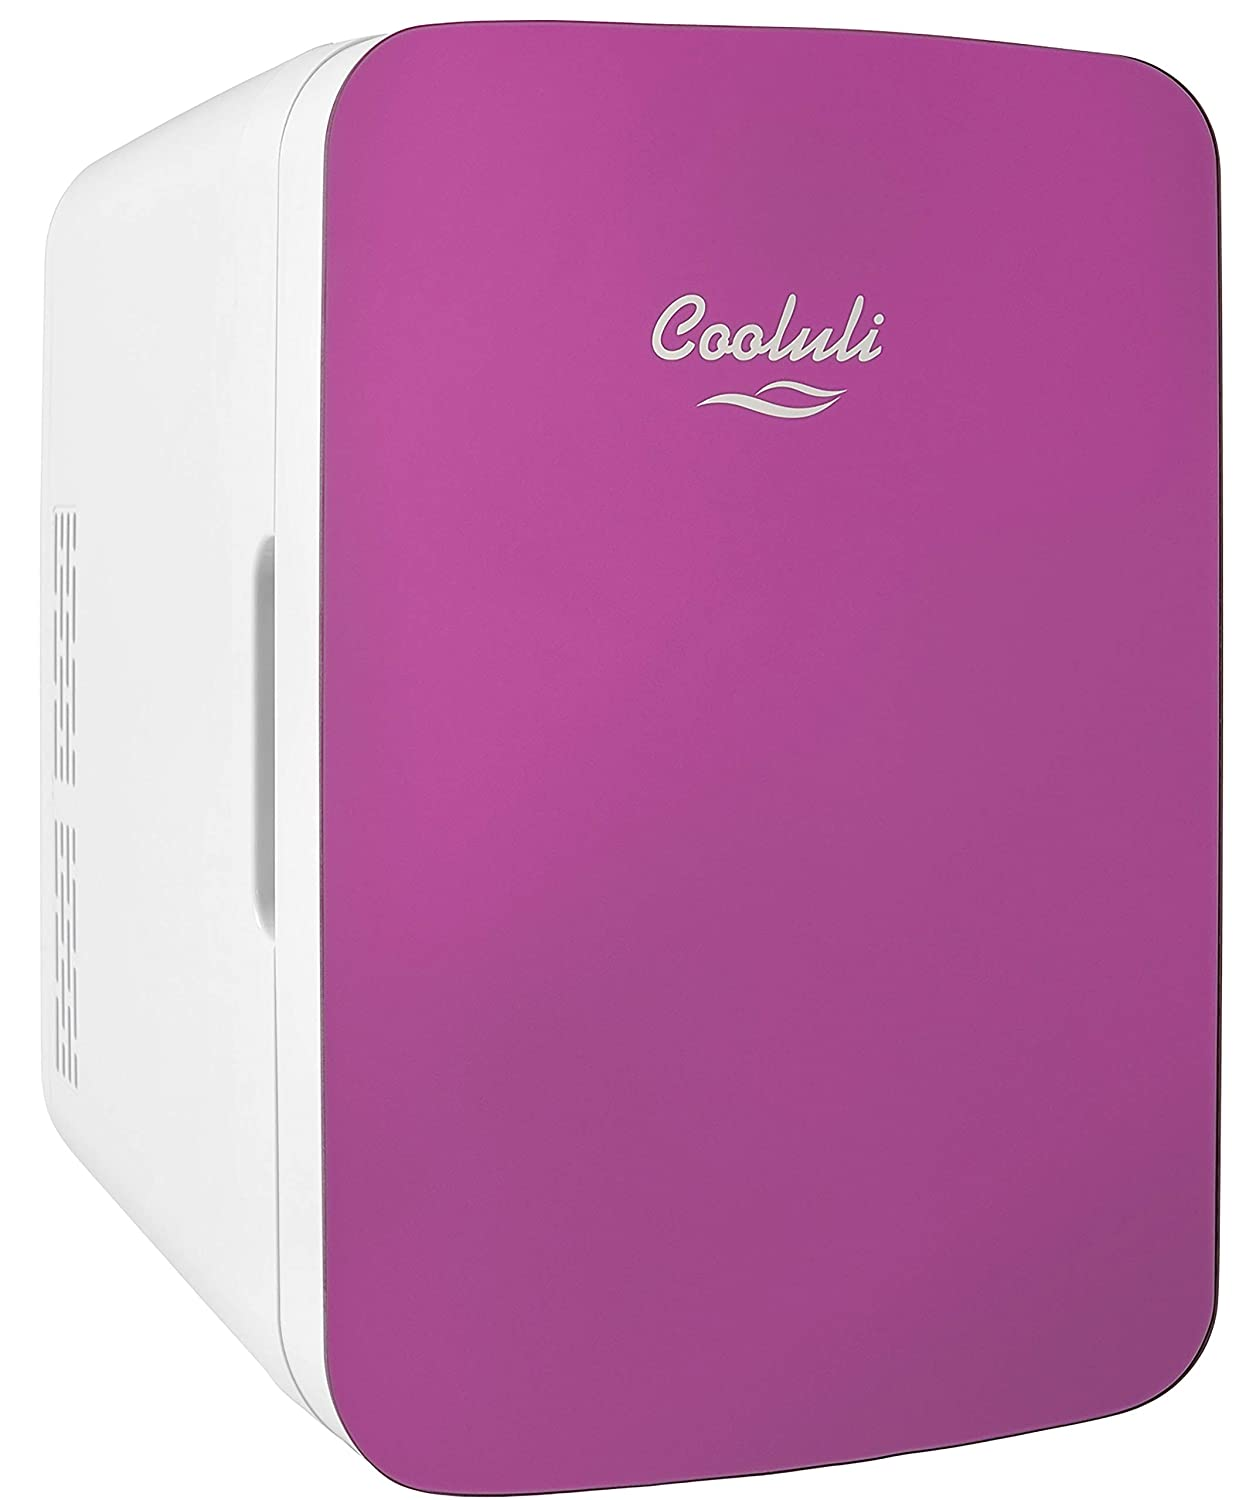 Cooluli Infinity 10-liter Compact Cooler/Warmer Mini Fridge for Cars, Road Trips, Homes, Offices, and Dorms (Pink)